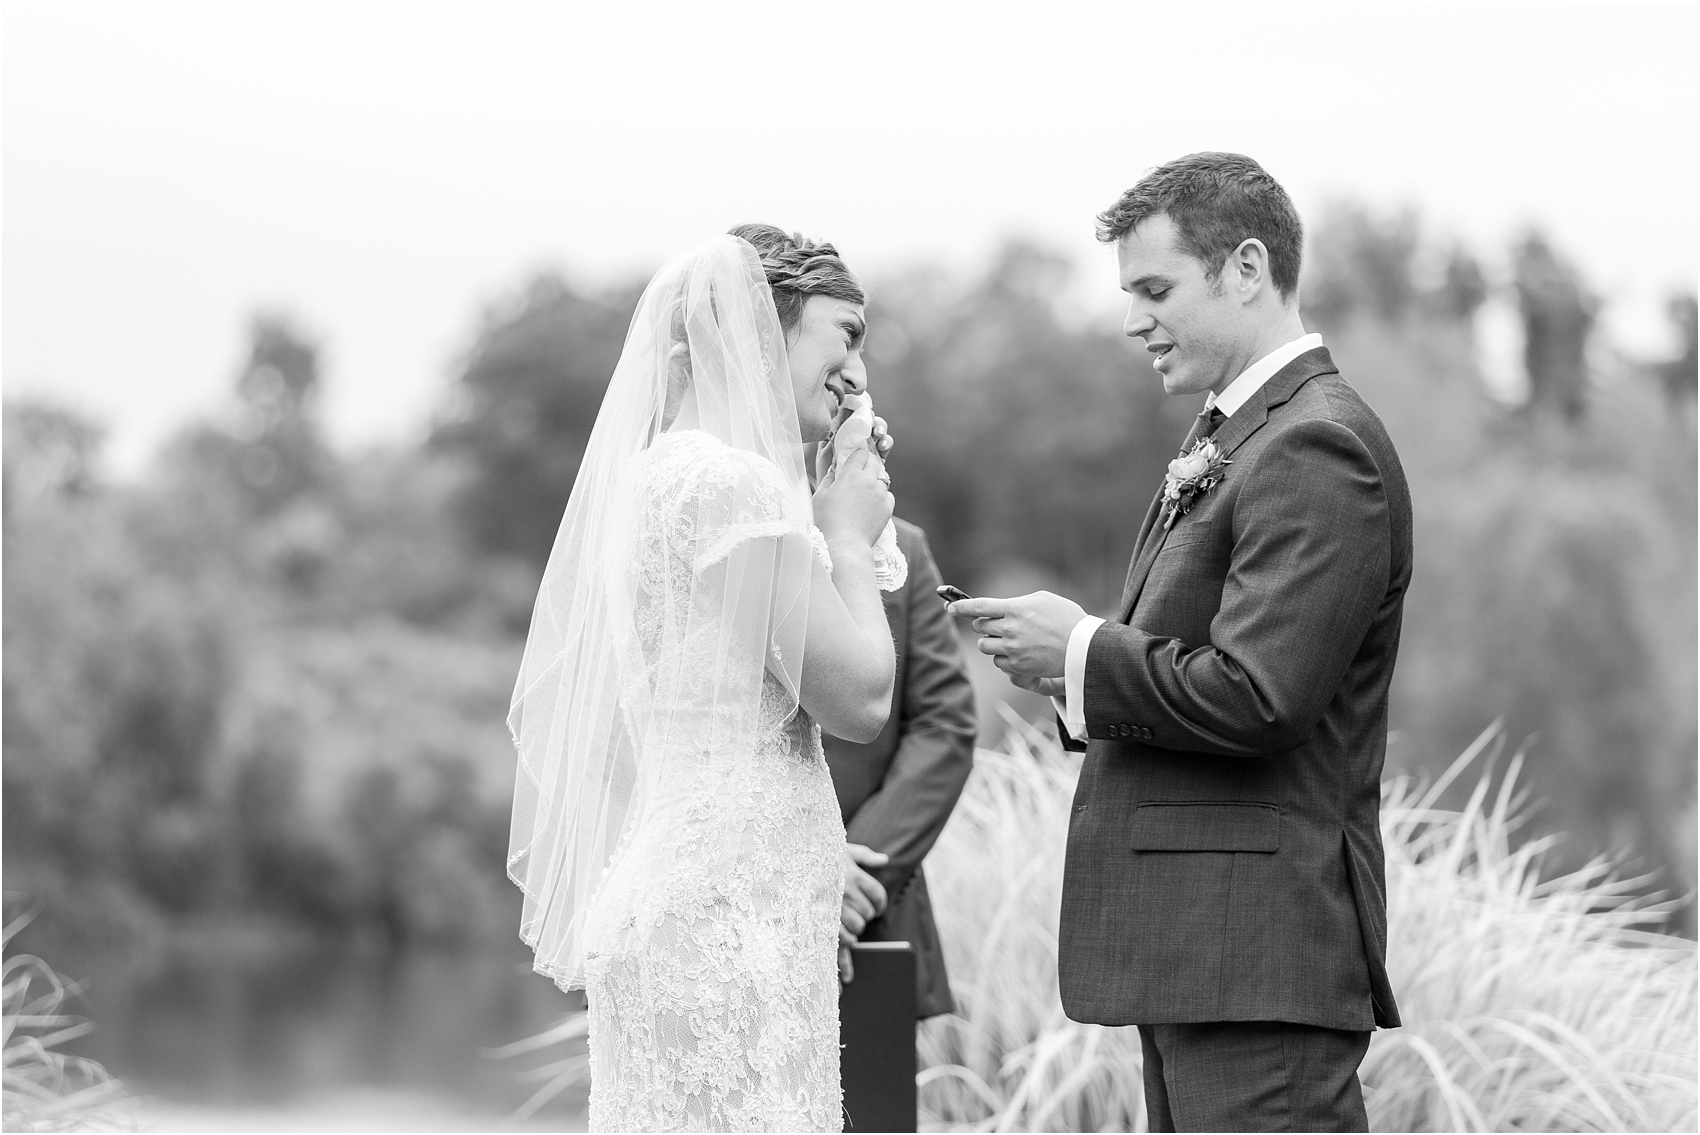 romantic-intimate-backyard-wedding-photos-at-private-estate-in-ann-arbor-mi-by-courtney-carolyn-photography_0103.jpg